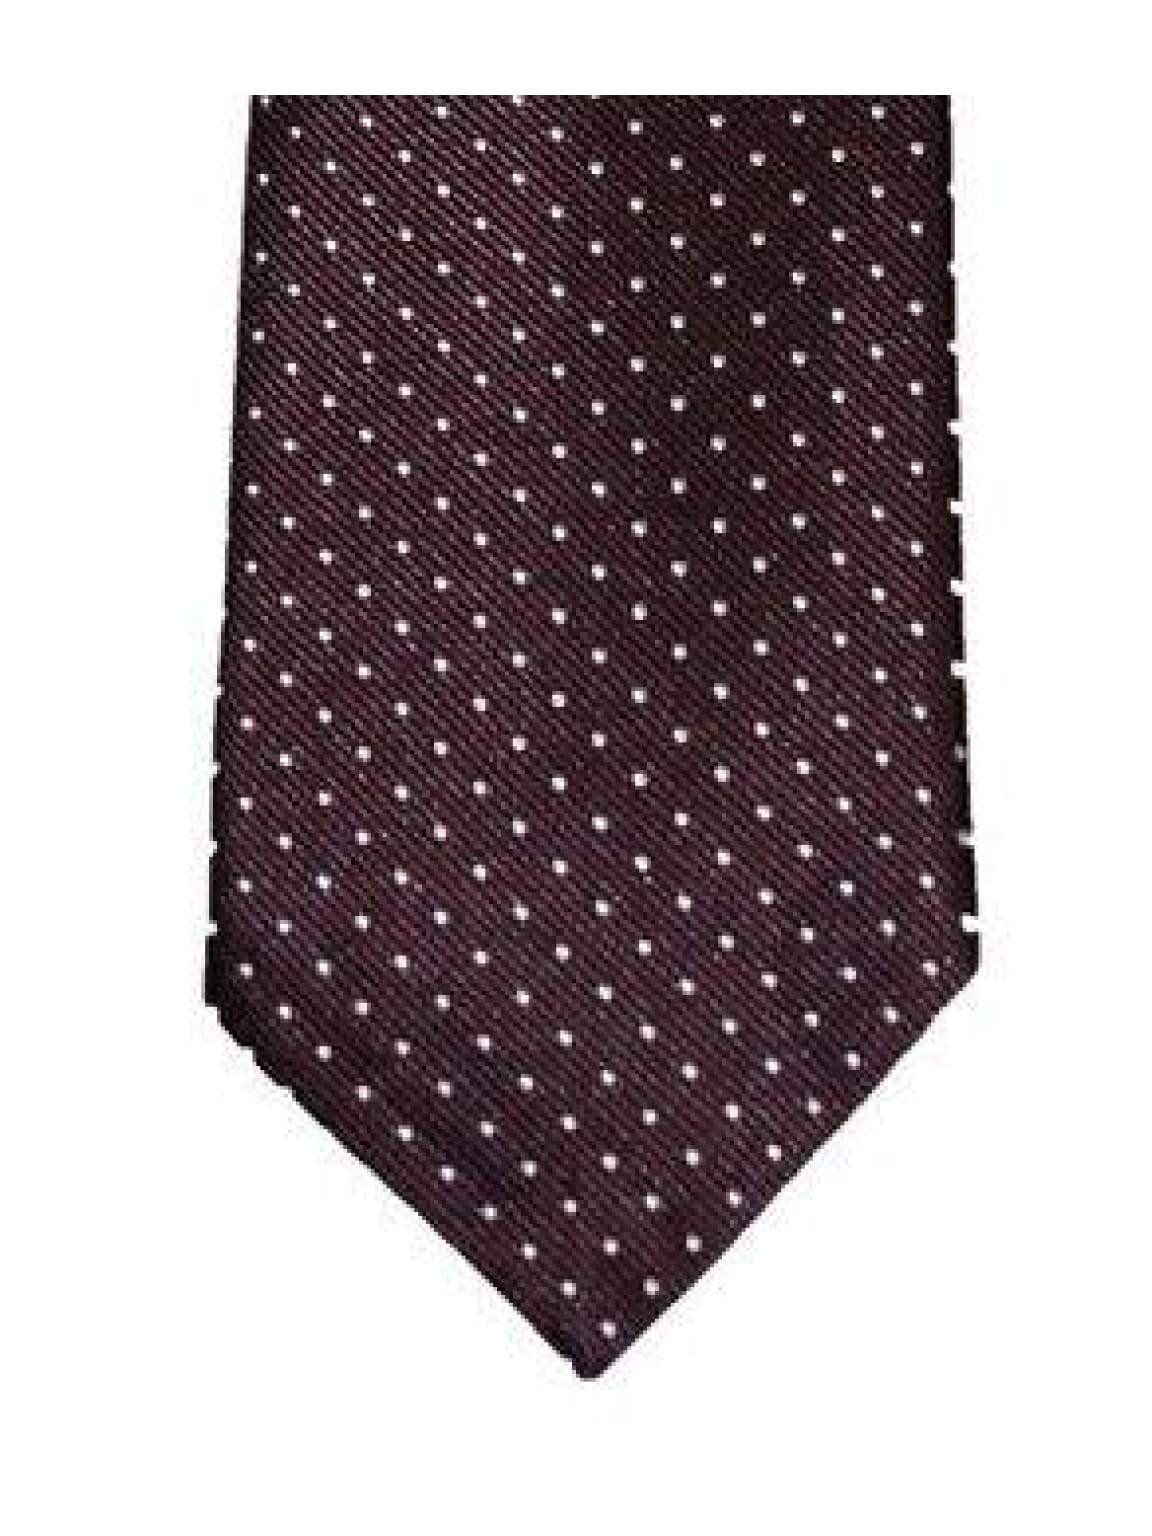 Burgundy White Polka Dot Tie Set - Accessories